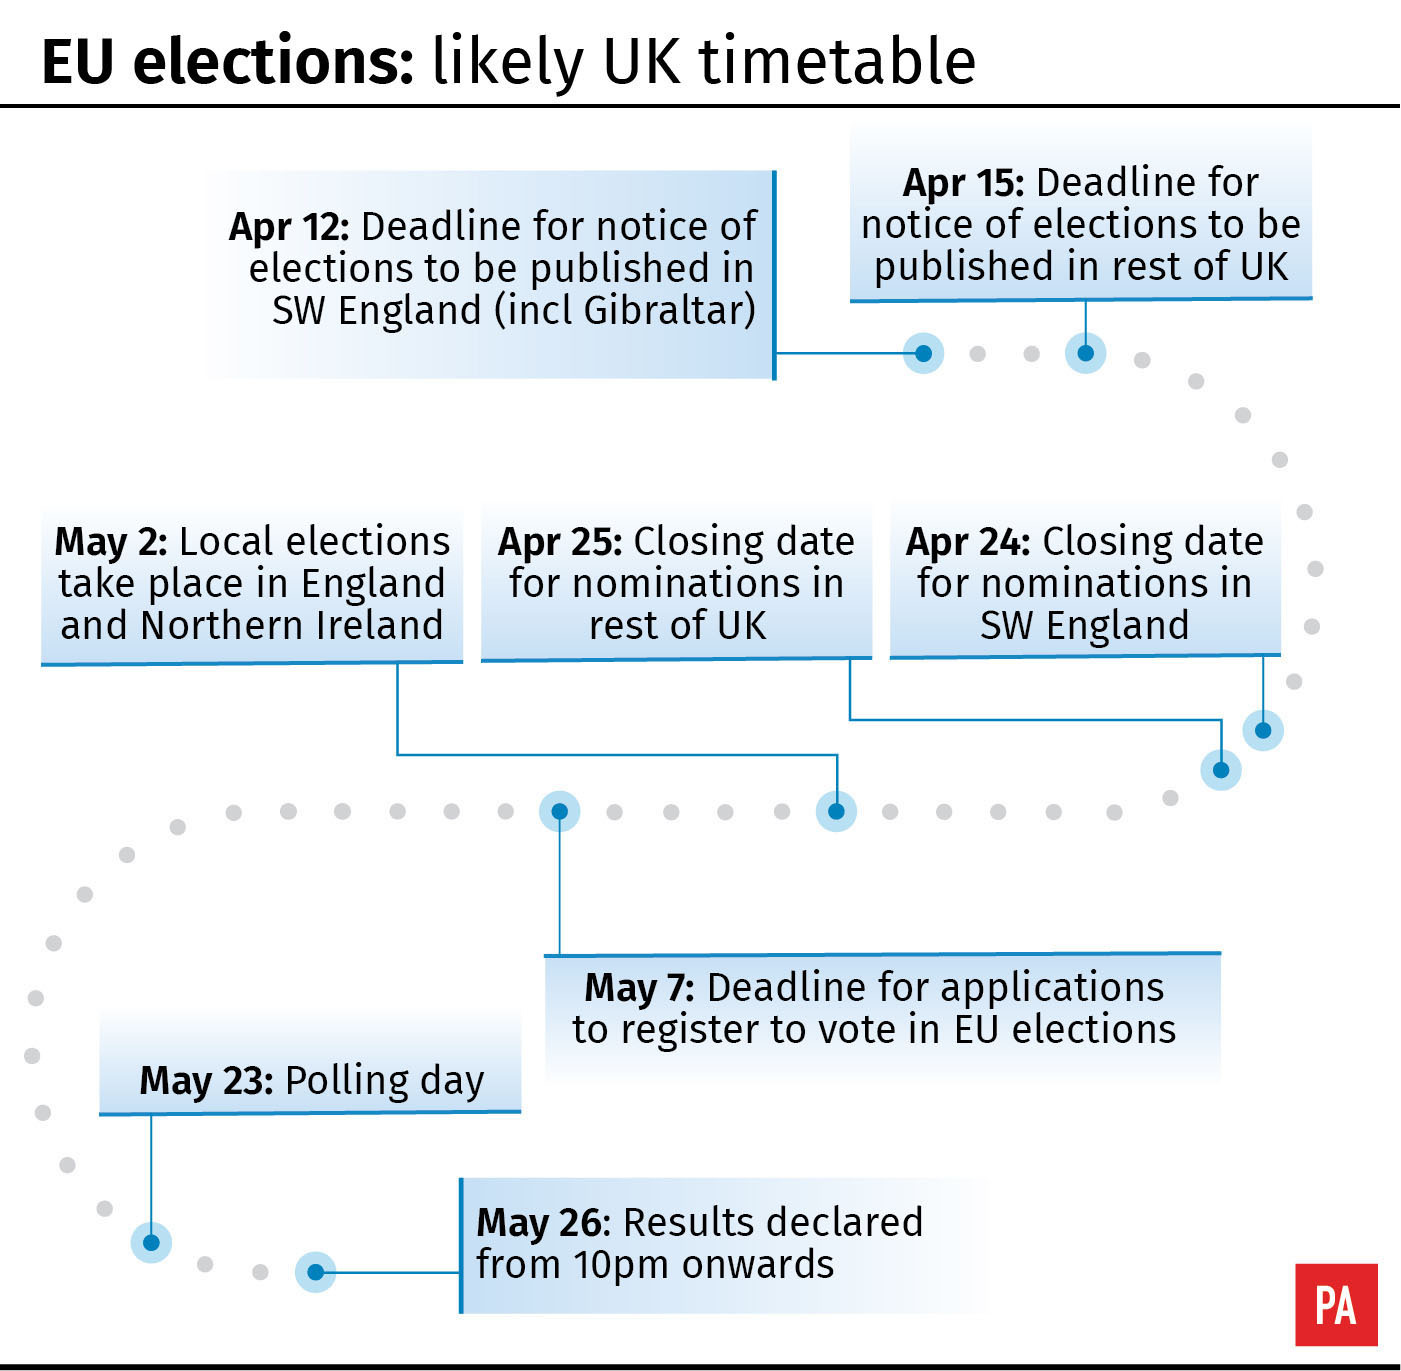 EU elections likely UK timetable